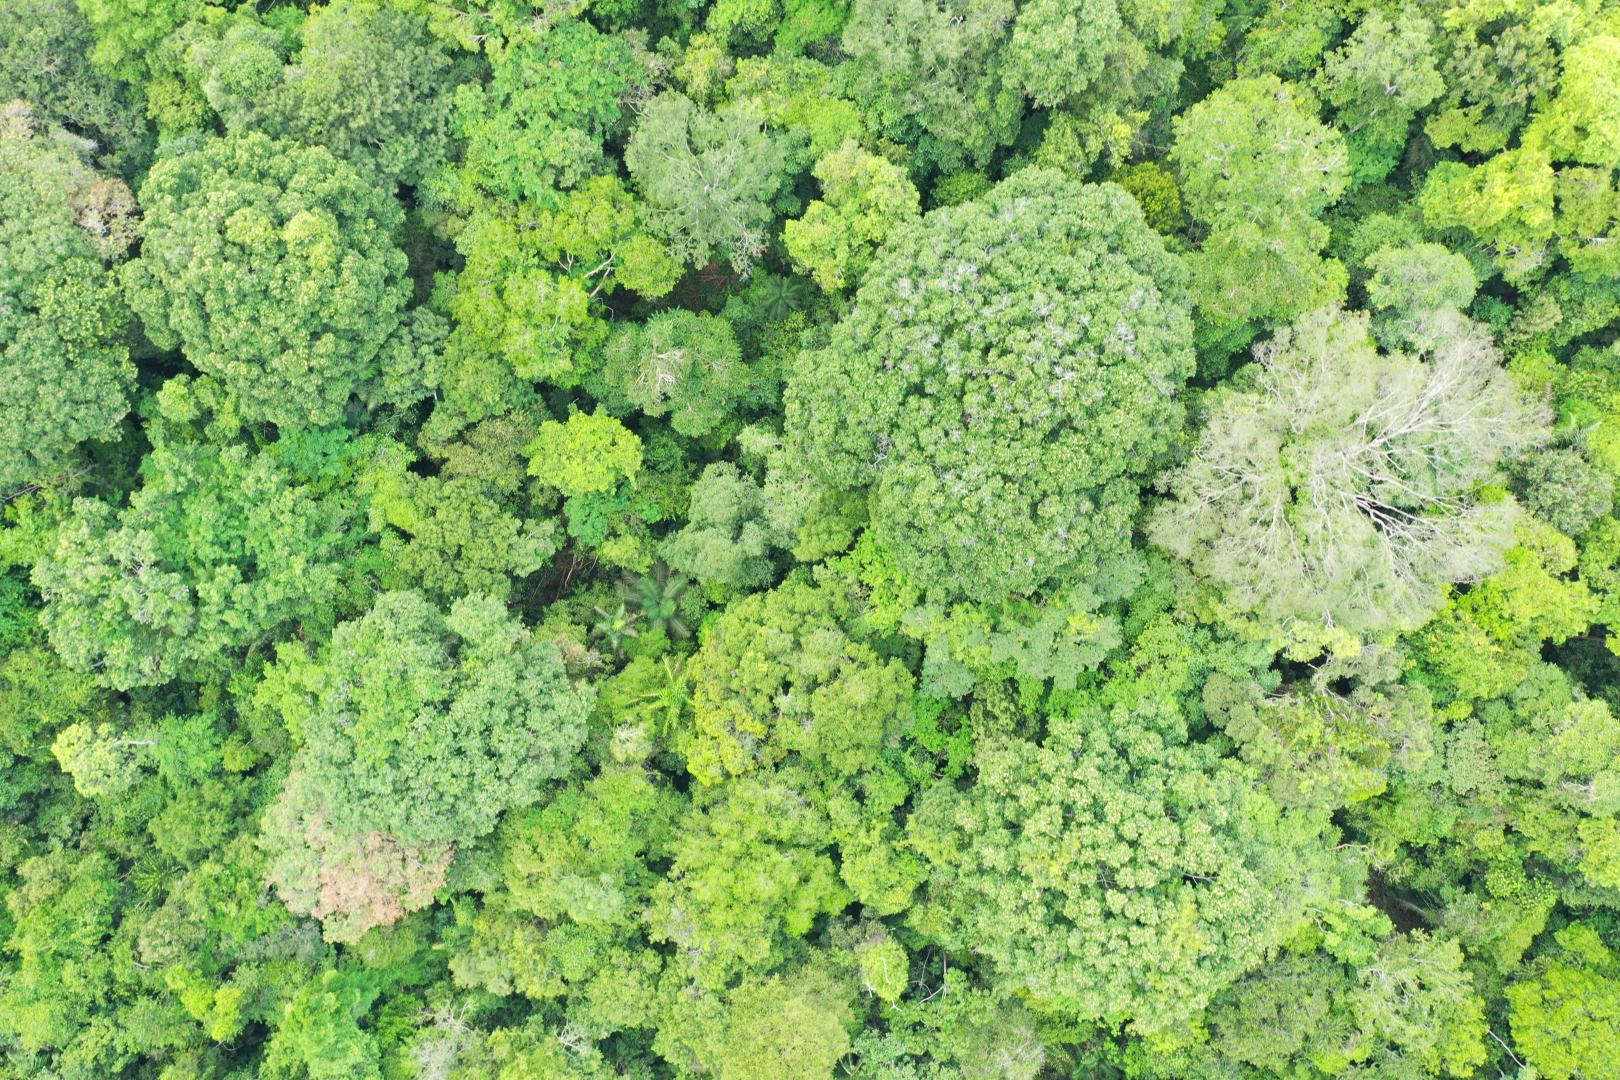 Aerial imagery of forest canopy